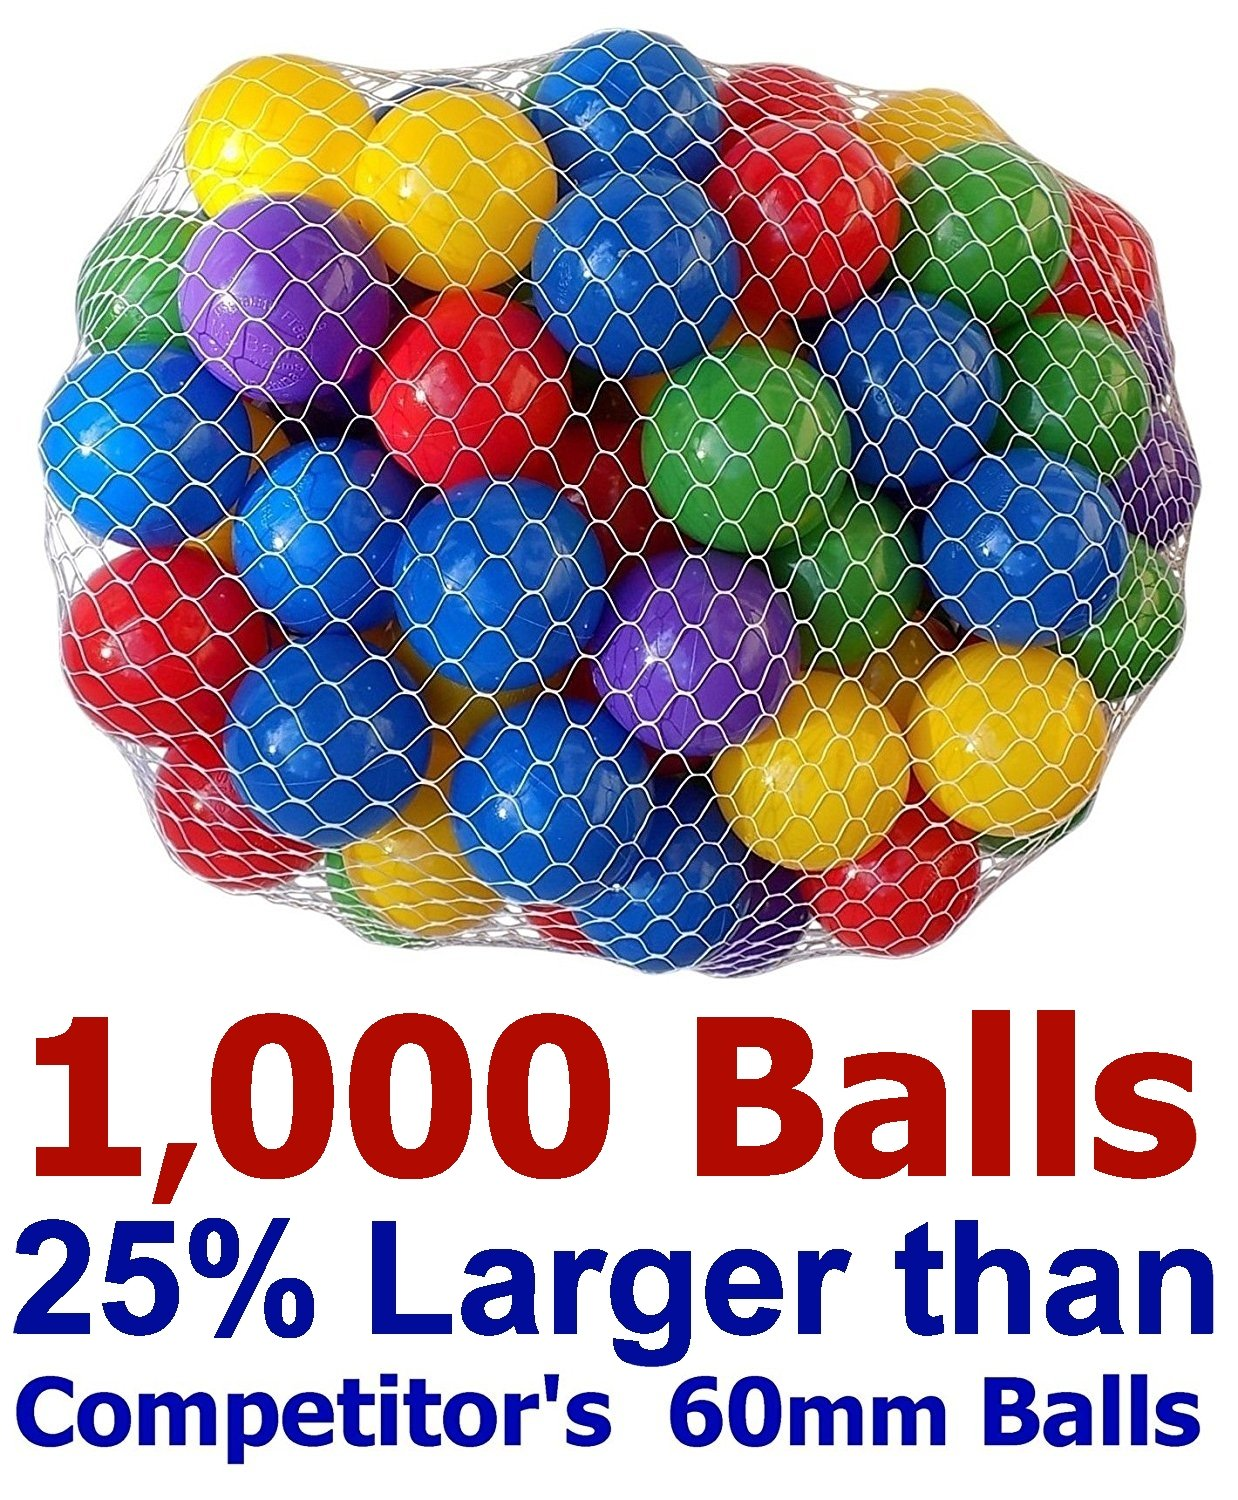 My Balls Pack of 1,000 Large Ball Pit Balls in 5 Bright Colors - Crush-Proof Air-Filled; Phthalate Free; BPA Free; non-Toxic; non-PVC; non-Recycled Plastic